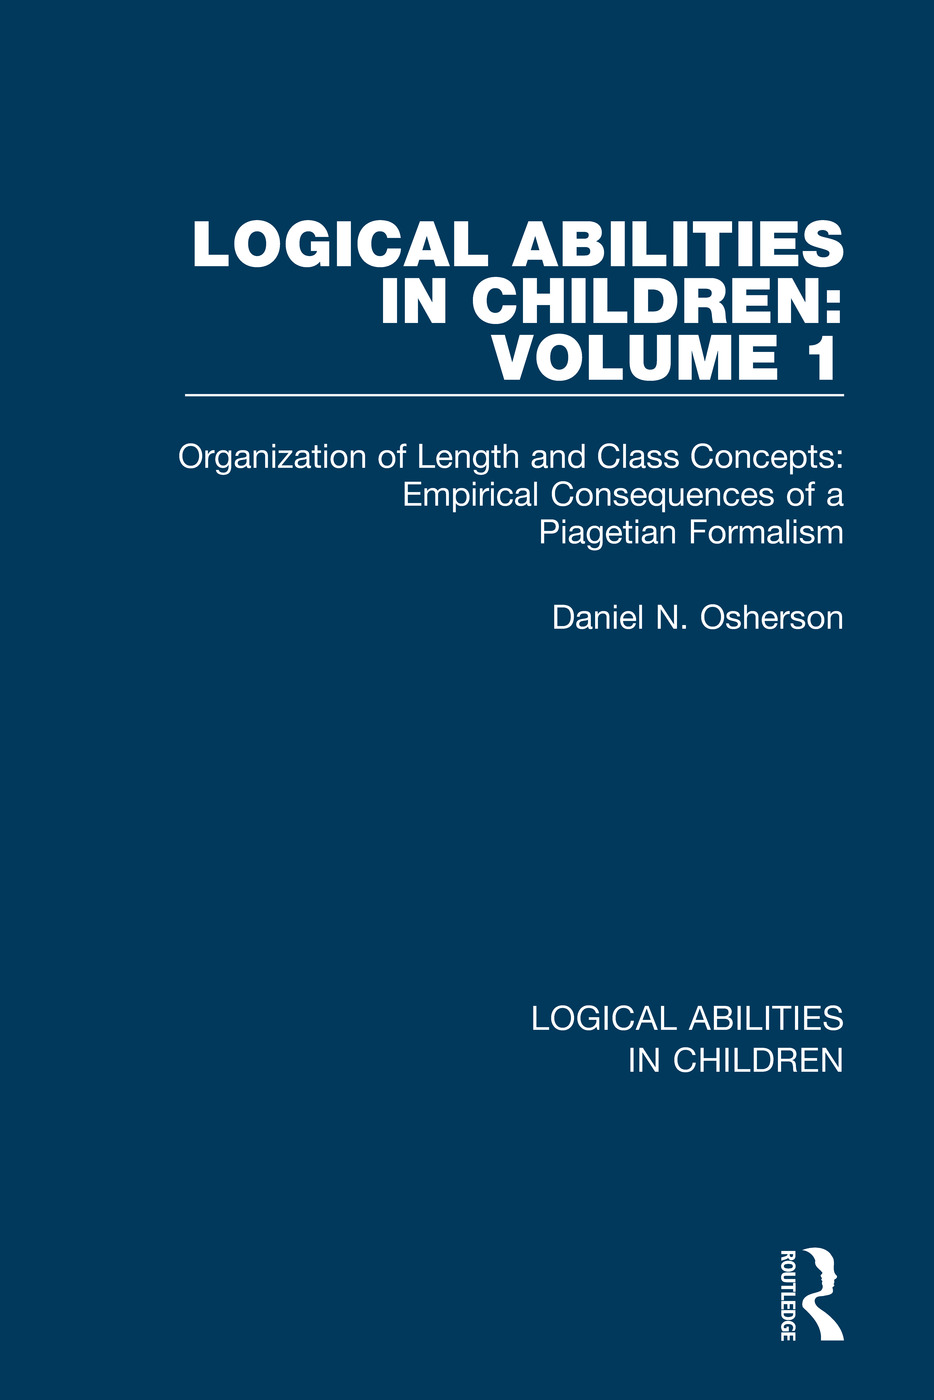 Logical Abilities in Children: Volume 1: Organization of Length and Class Concepts: Empirical Consequences of a Piagetian Formalism book cover